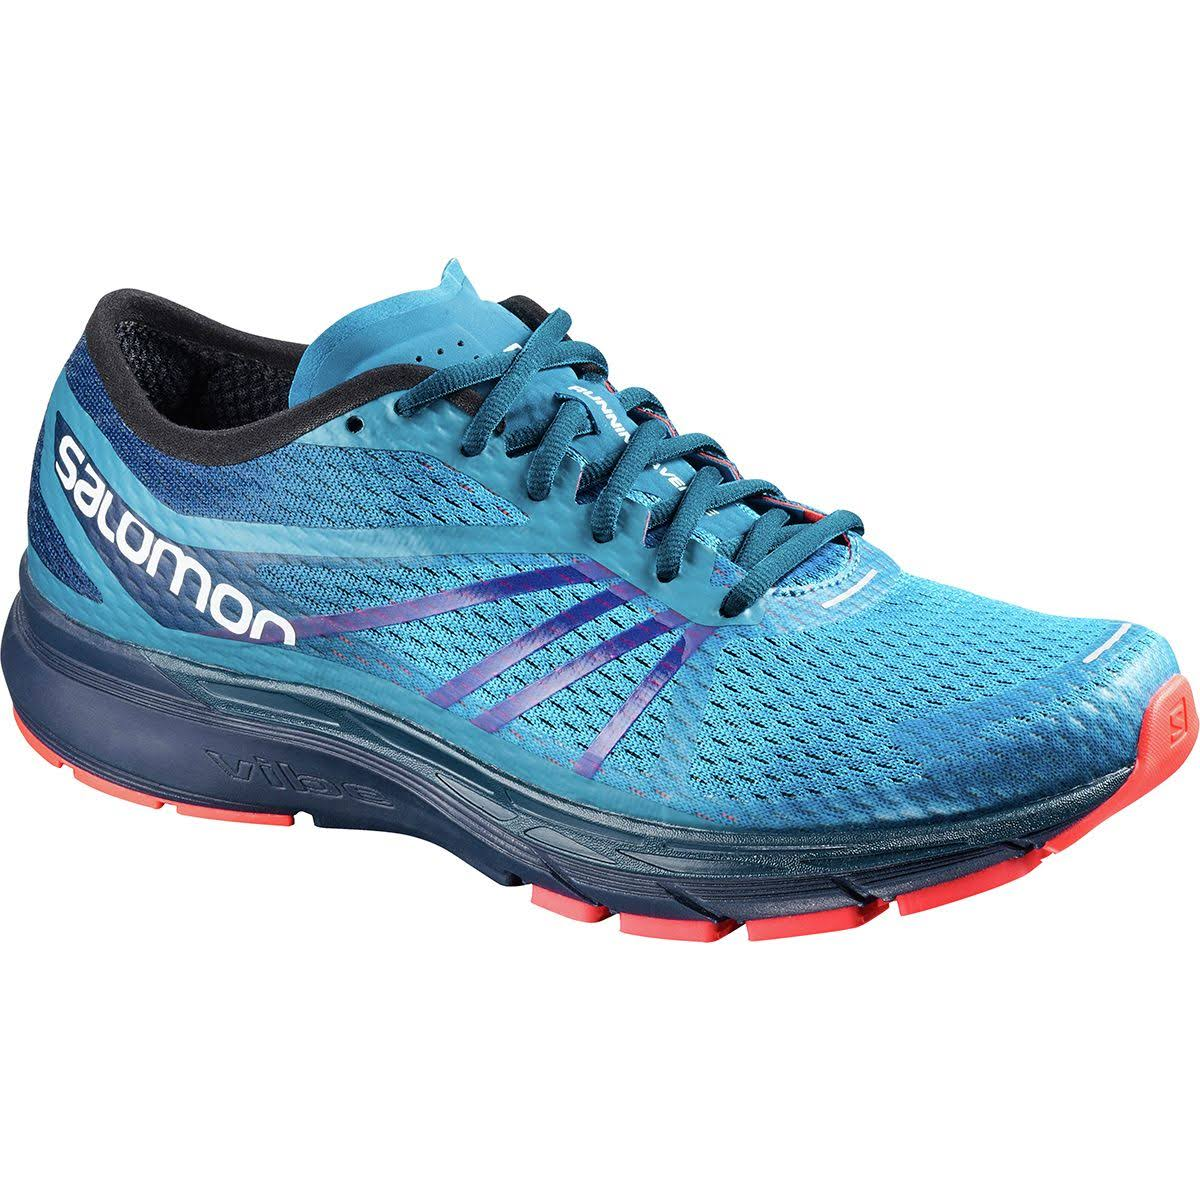 bk Ra Men Surf D 0 Pro Sonic 11 Shoe Salomon qfgYSpy